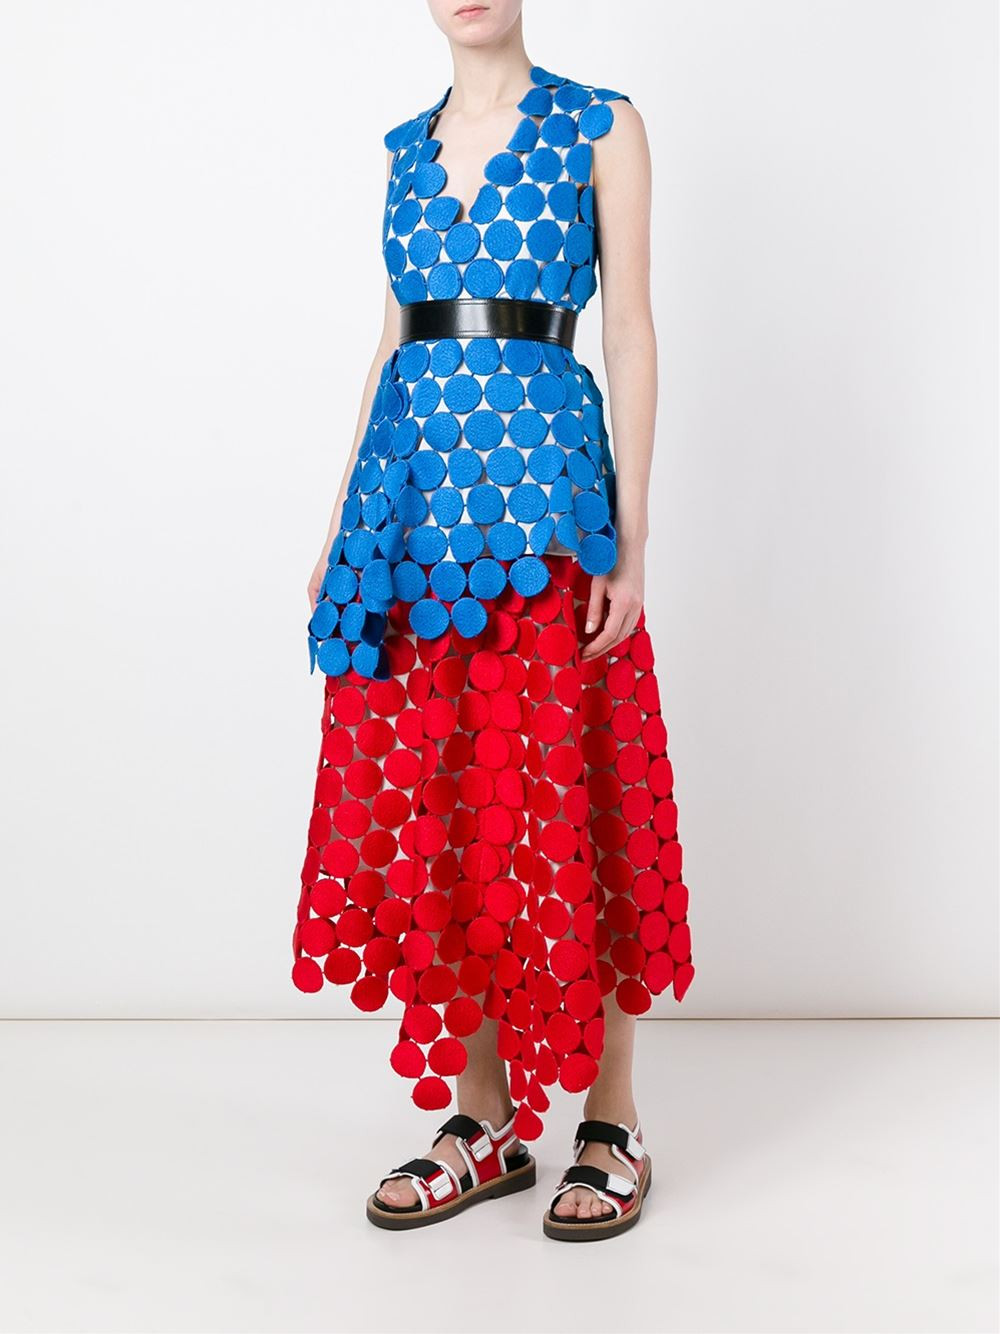 Marni 'Dot in Macramé' top now $918 (for the skirt please click the link below)